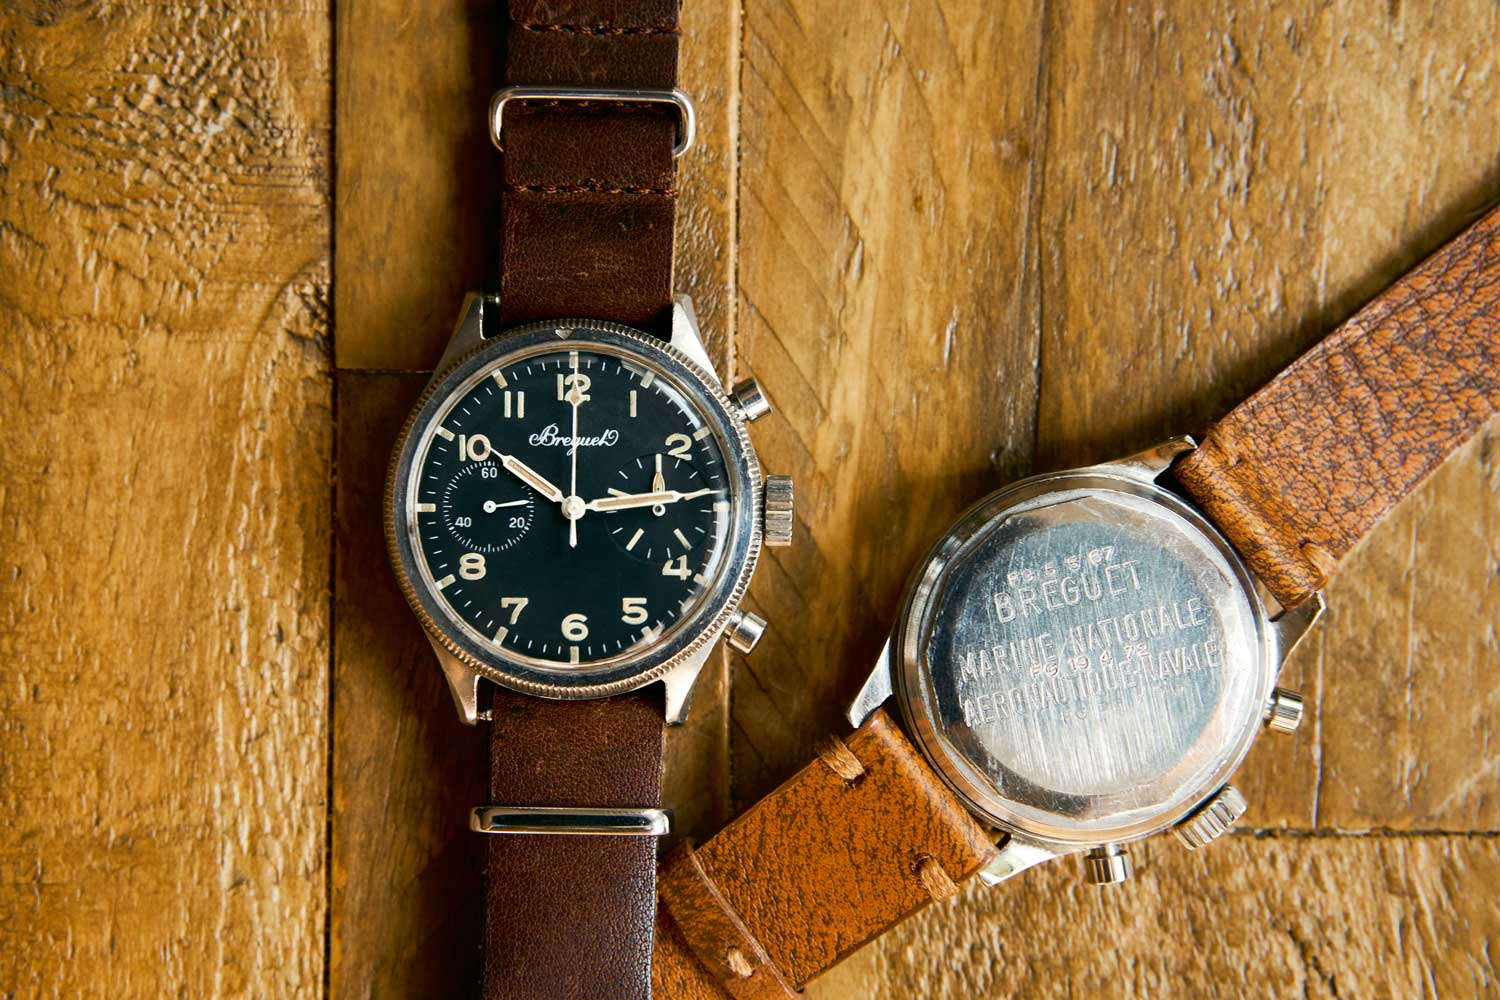 """A """"Big-Eye"""" Breguet Type 20. A fine example of the Marine Nationale military engravings on the case back provides clues to the past."""